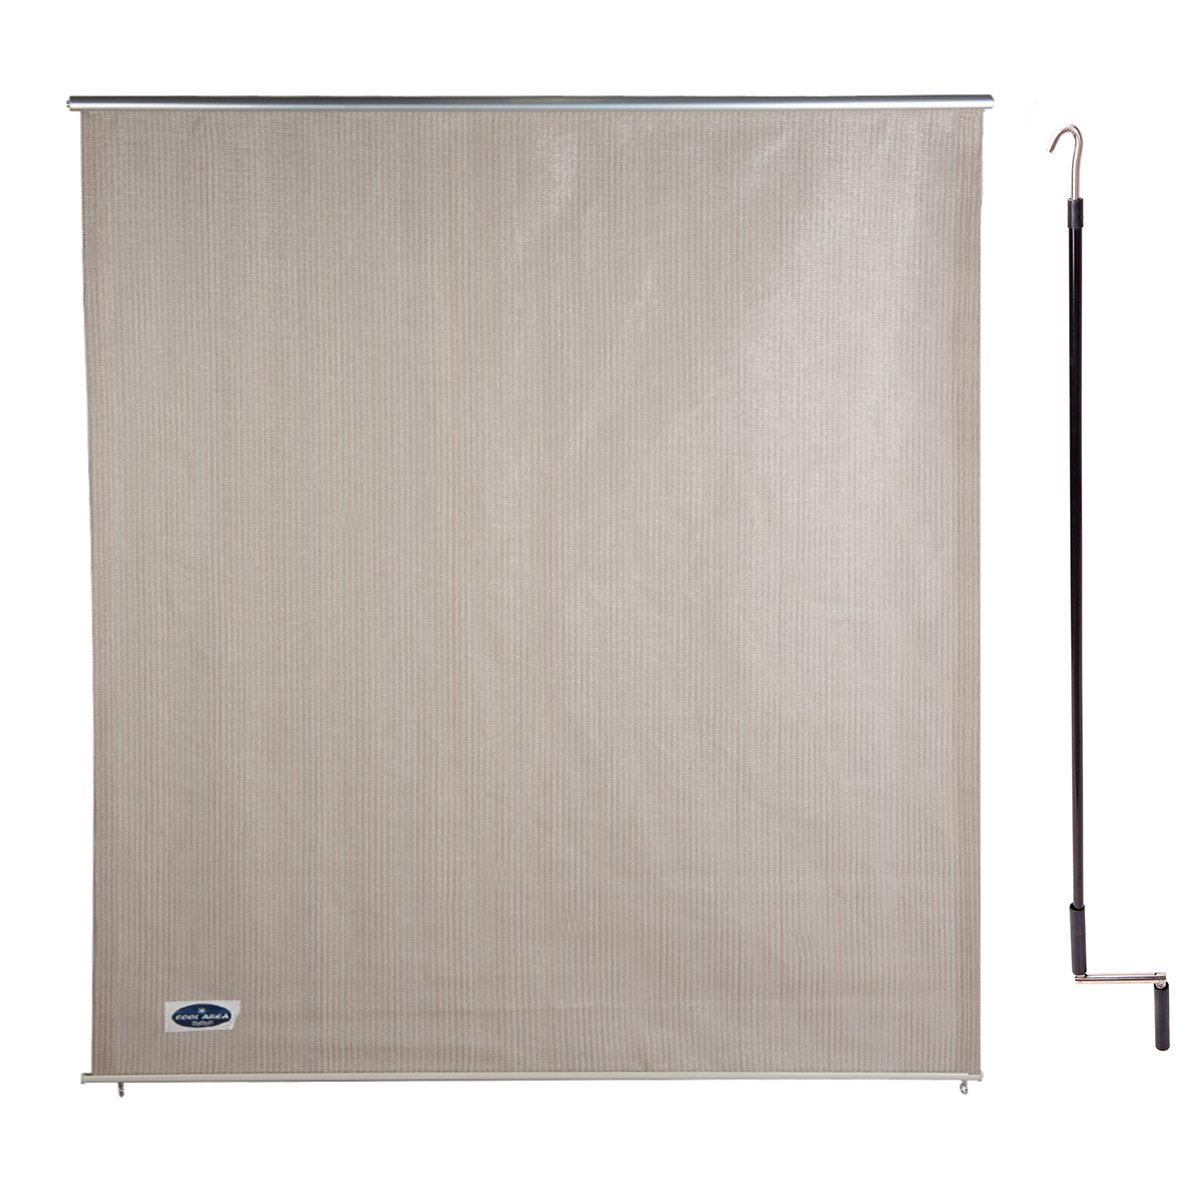 Cool Area 6ft x 6ft Outdoor Cordless Roller Sun Shade for Proch Patio in color Sesame